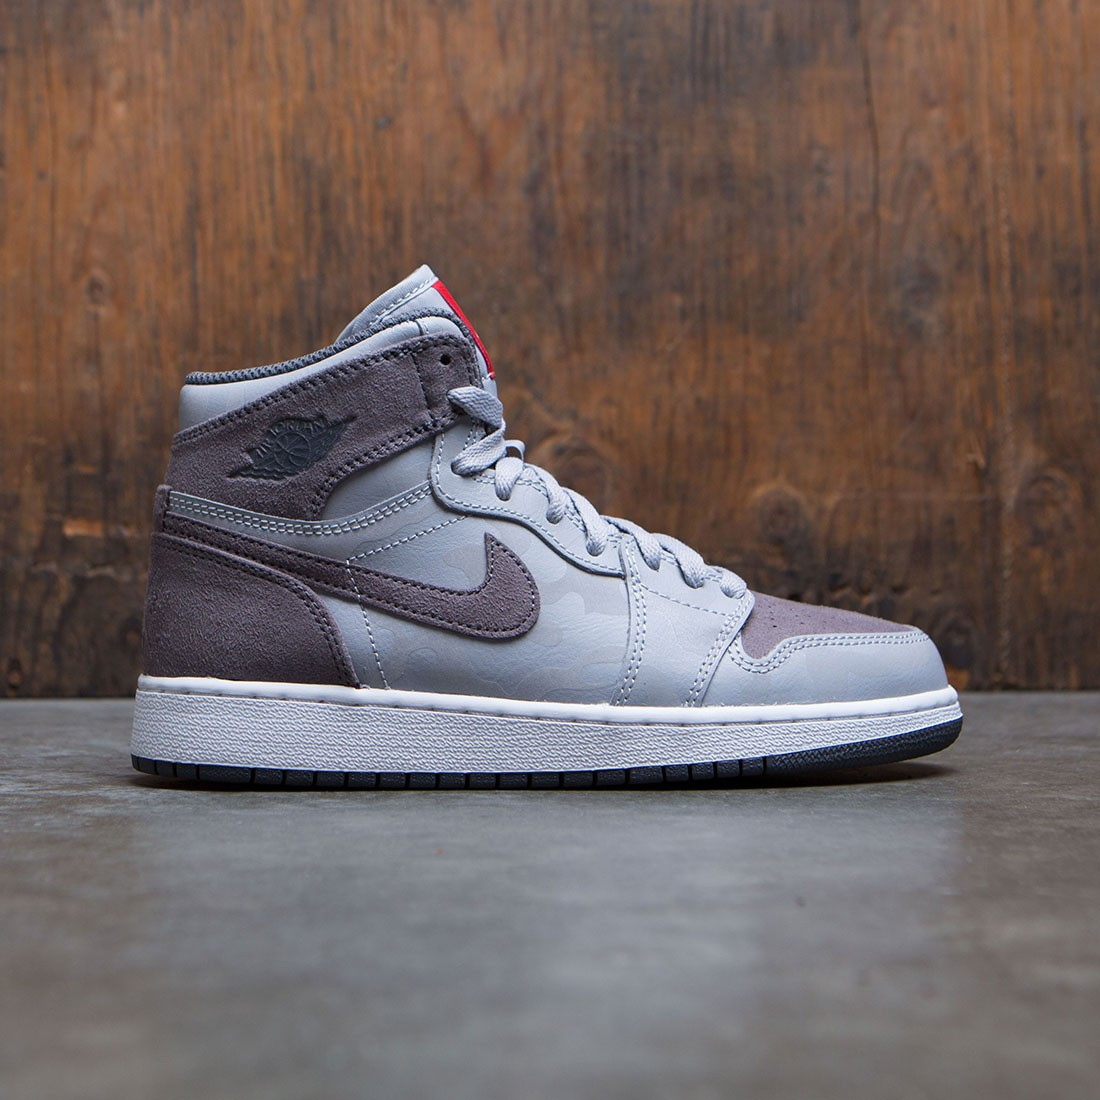 new arrivals ce3f9 4cfed jordan big kids air jordan 1 retro high premium gs gray wolf grey dark grey  white university red